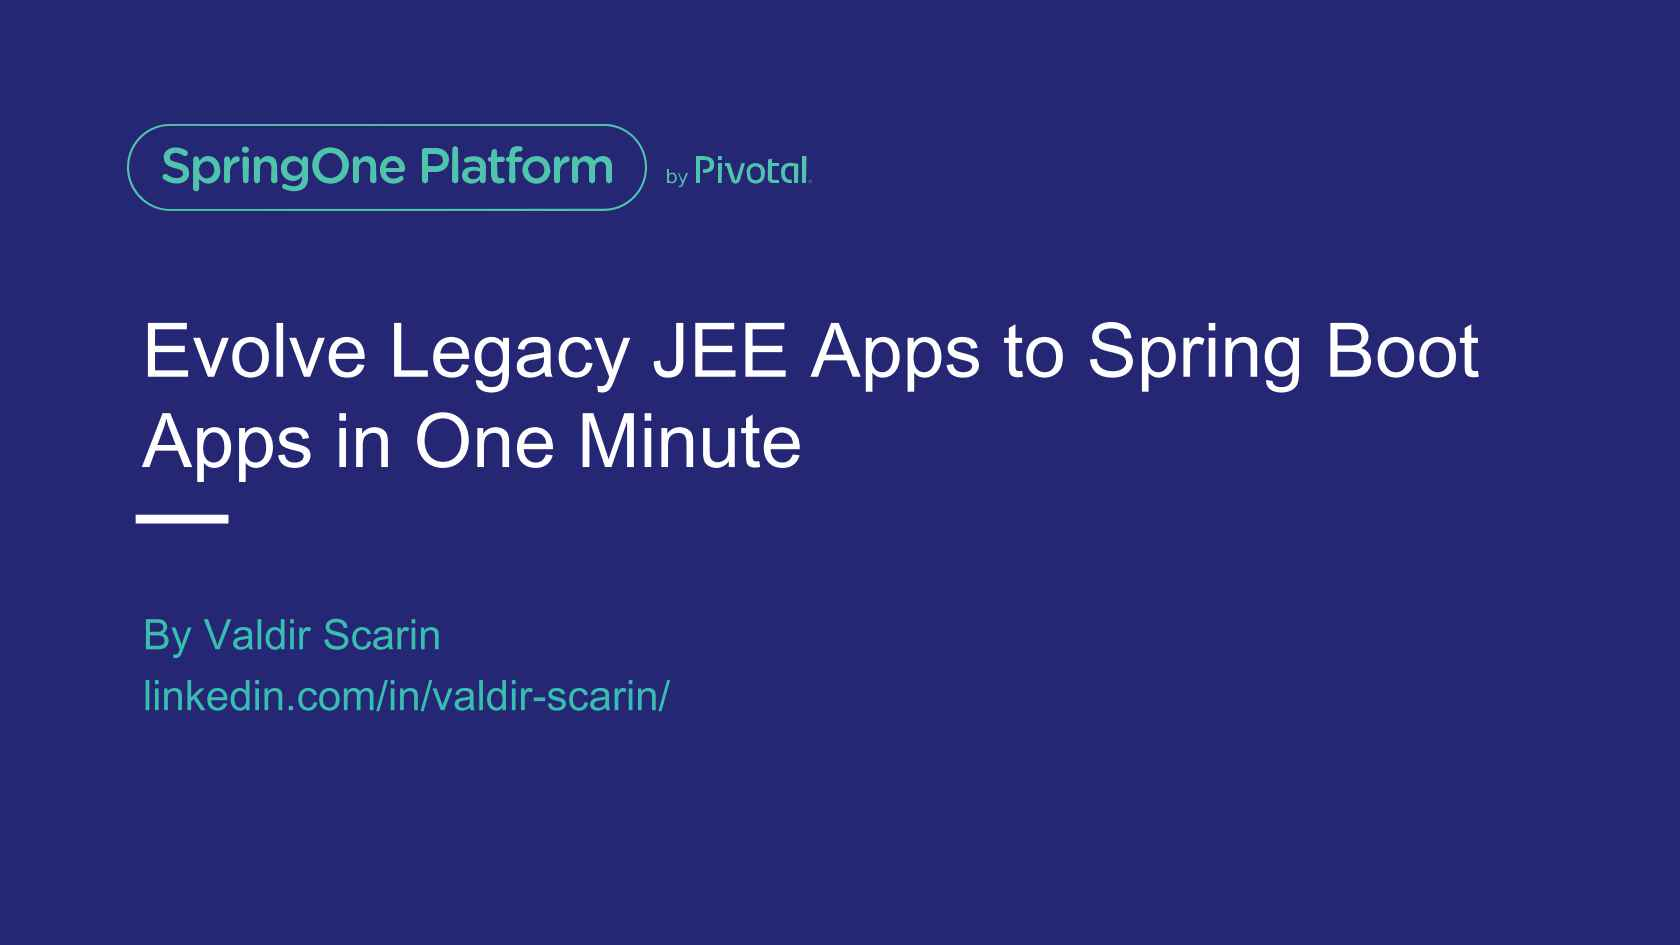 Evolve Legacy Java EE Apps to Spring Boot Apps in One Minute